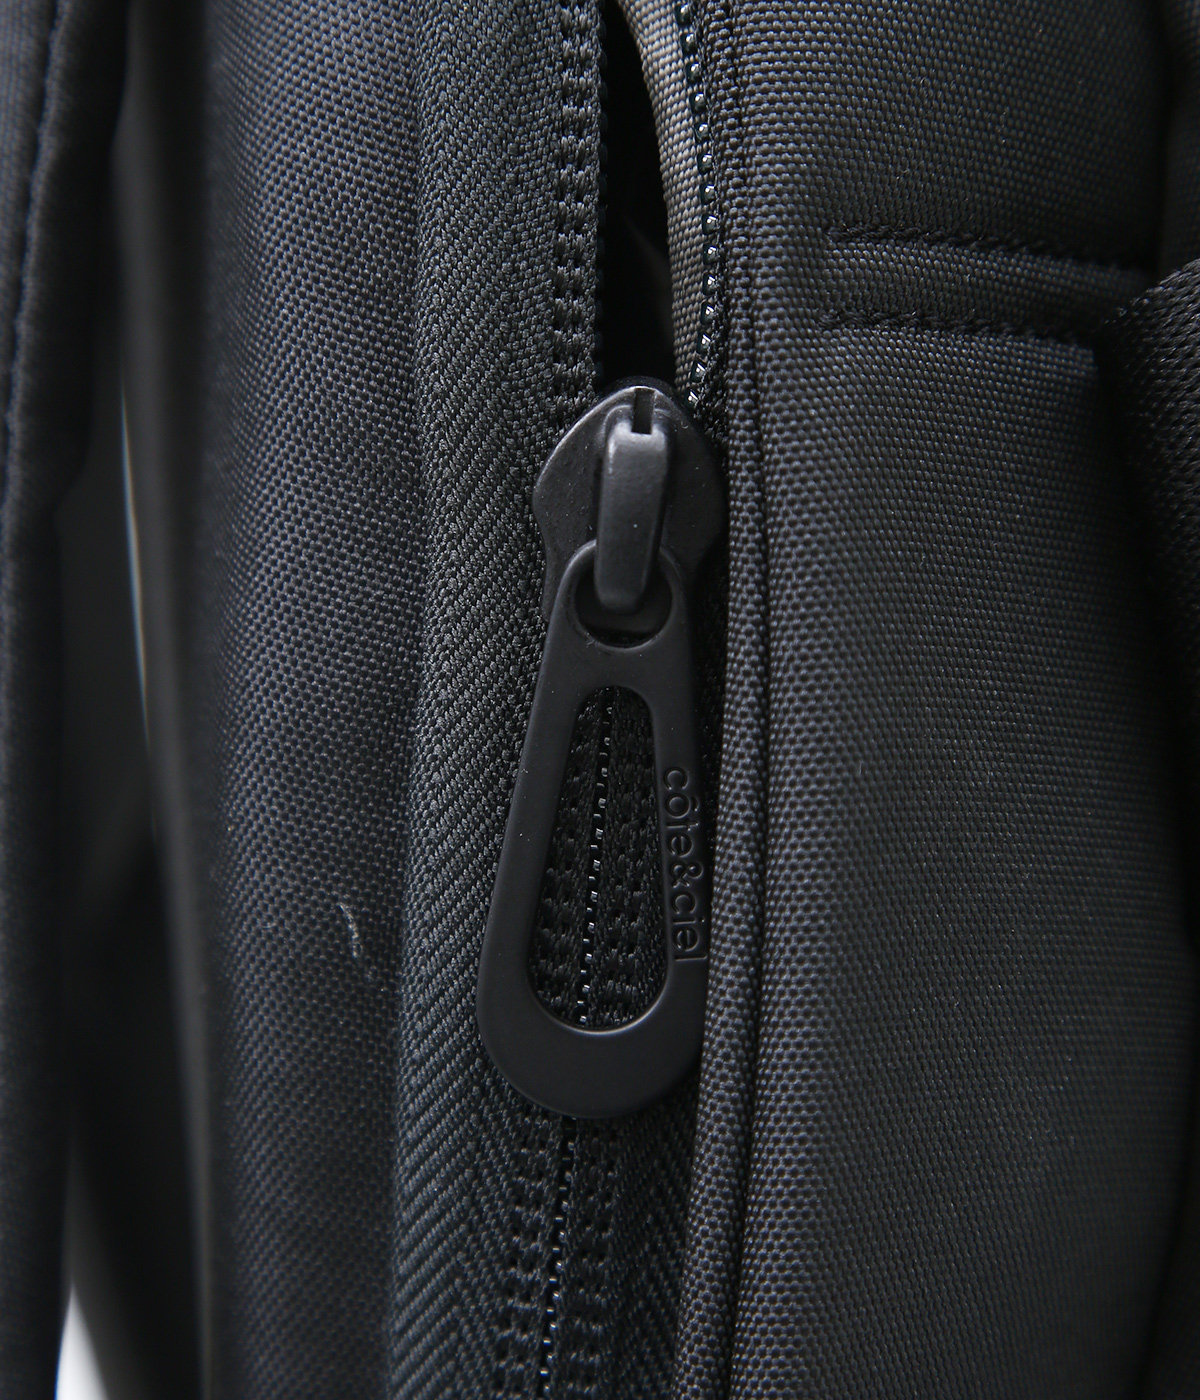 Isar Rucksack M (Eco Yarn / BLACK / Laptops up to 13inch)